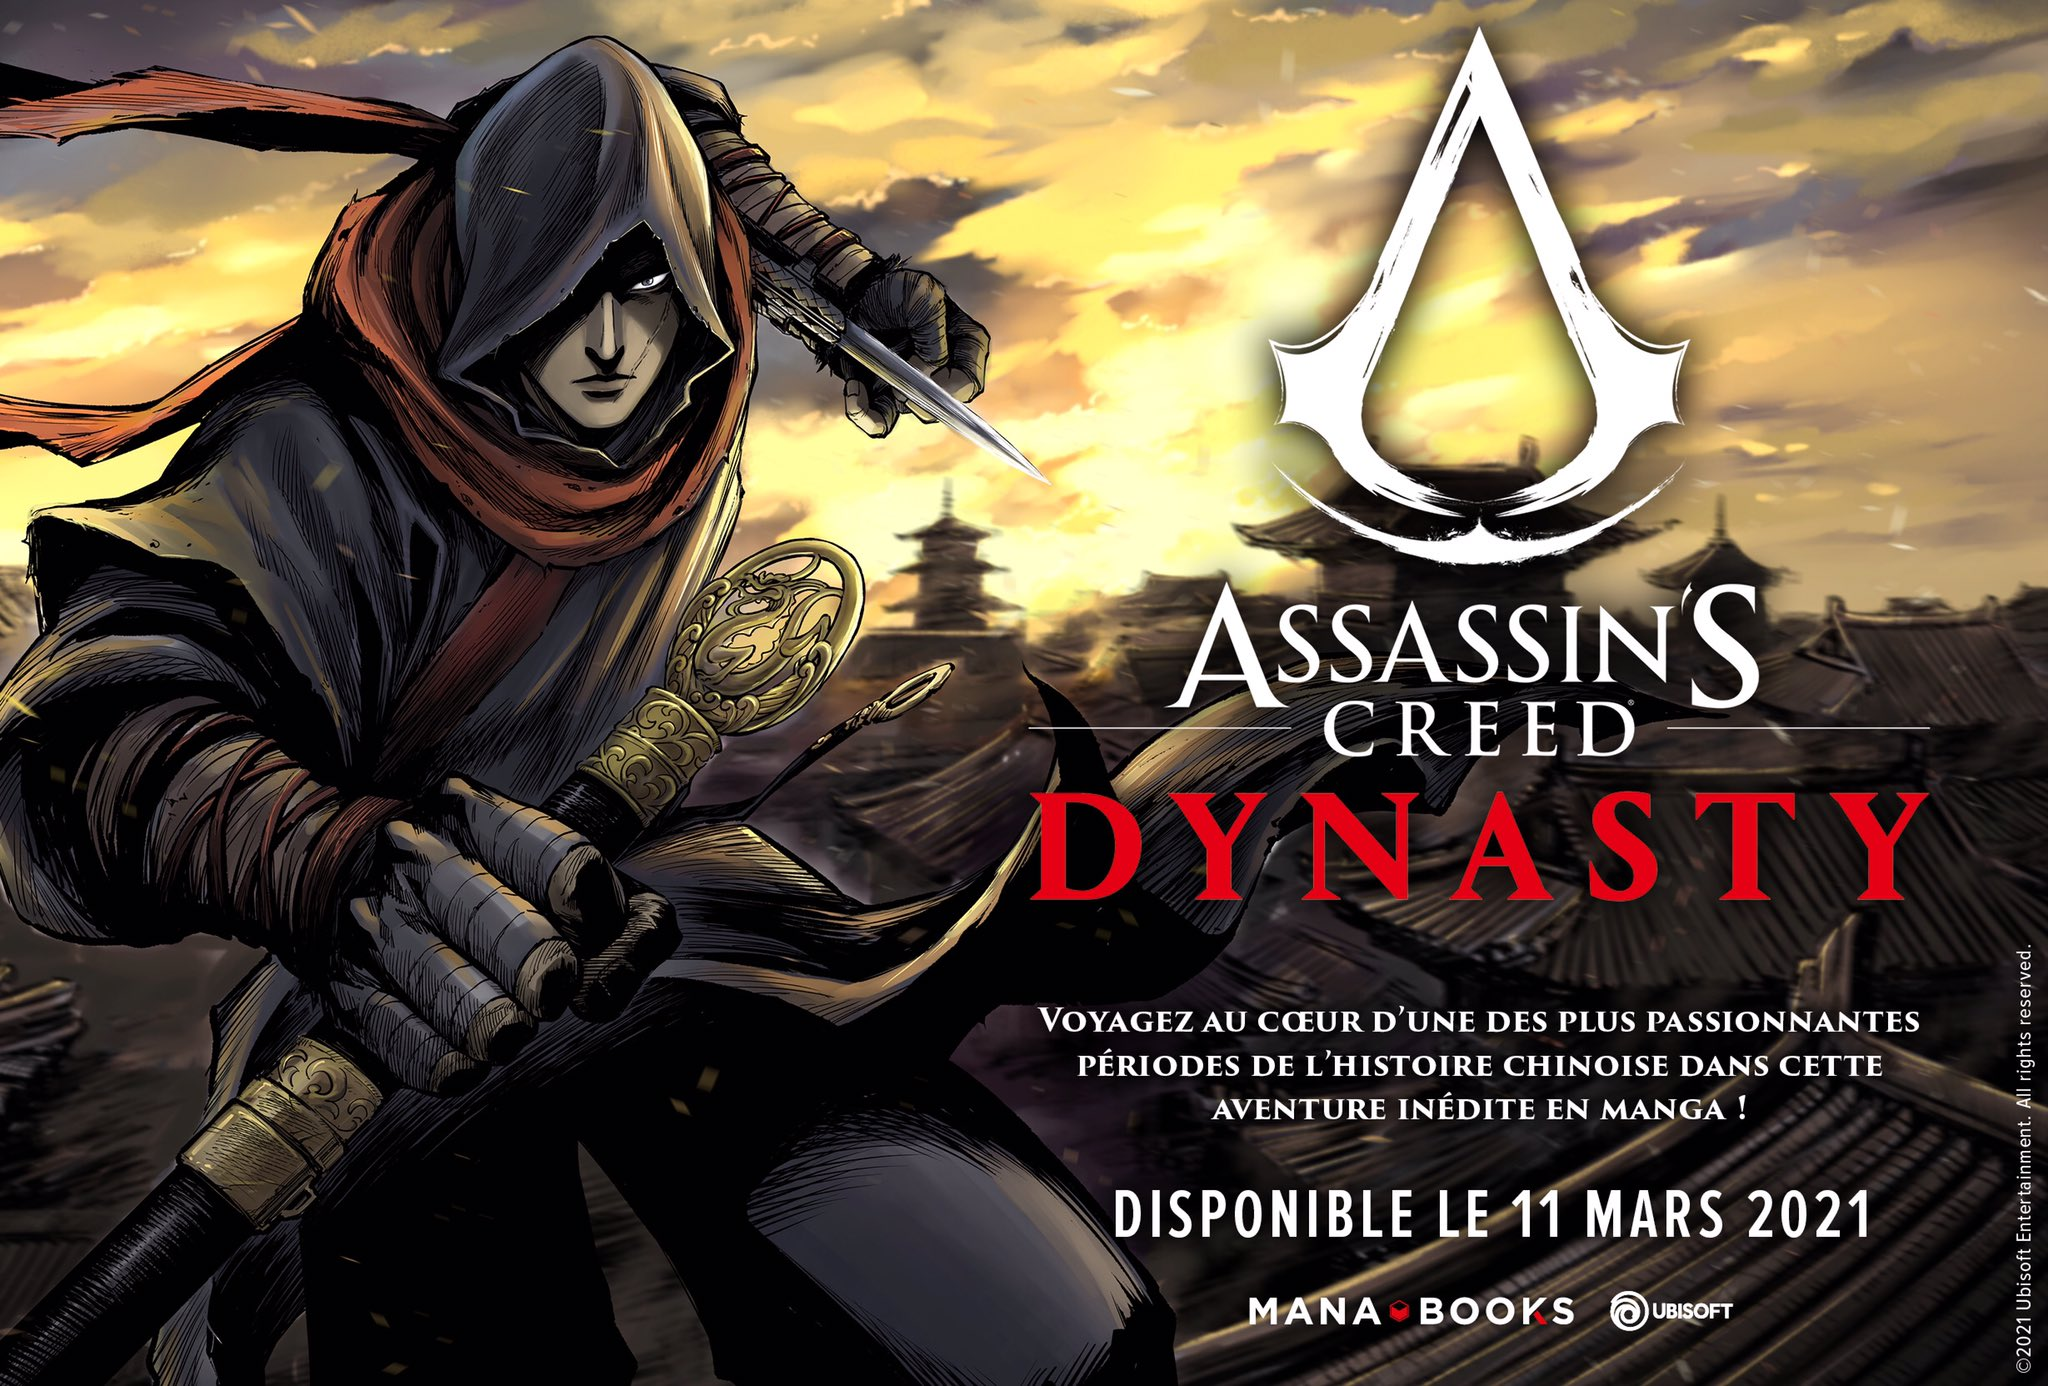 Assassin's Creed Dynasty Annonce